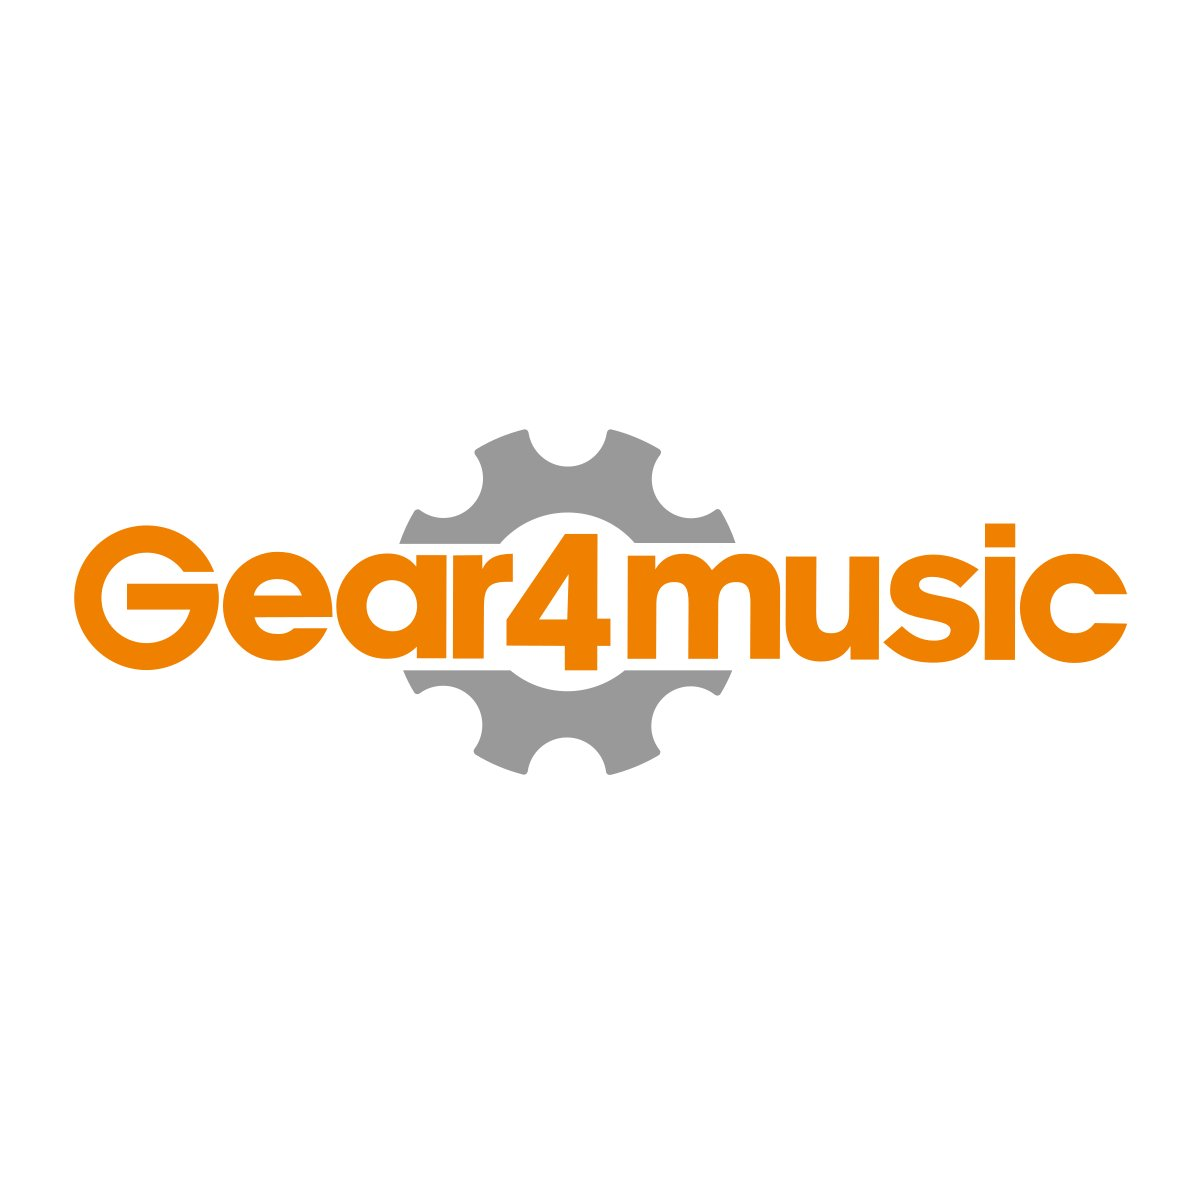 Taburete Ajustable de Piano/Teclado de Gear4music